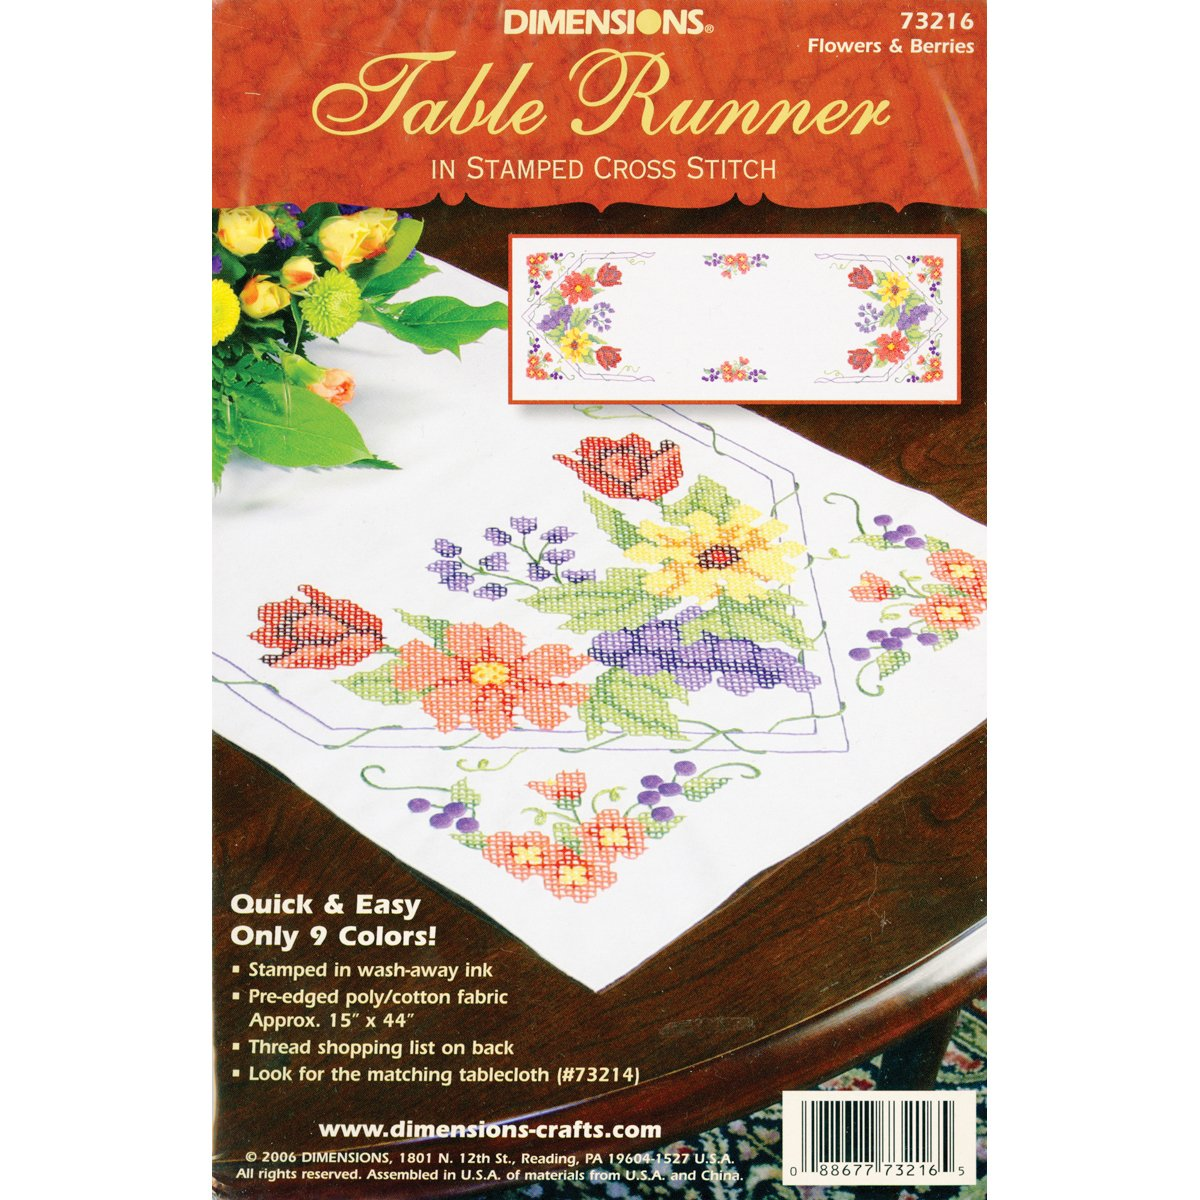 Dimensions Needlecrafts Stamped Cross Stitch, Flowers and Berries Table Runner 73216